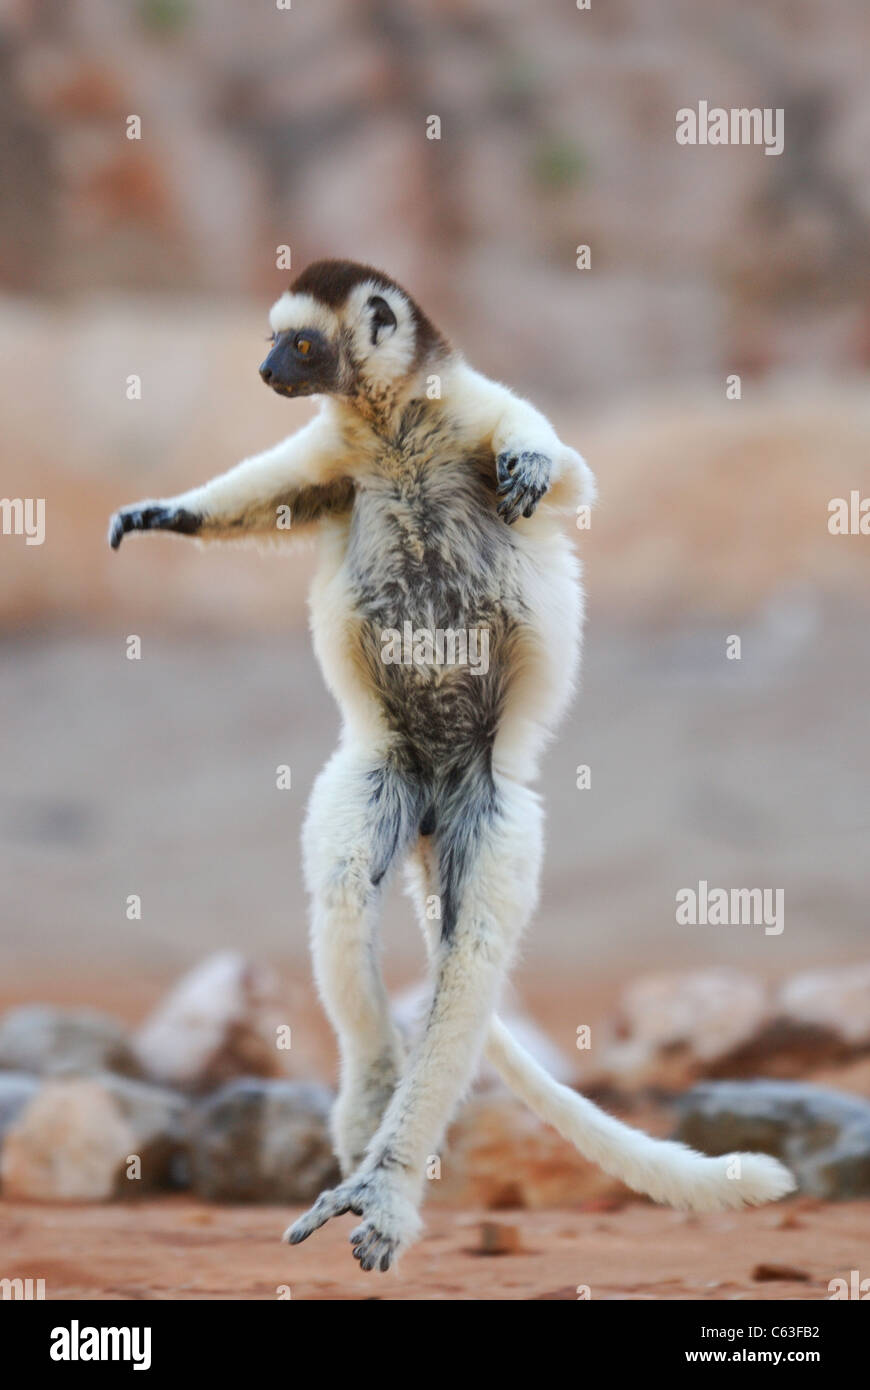 Verreaux's Sifaka (Propithecus verreauxi) dancing in the Berenty Nature Reserve, southern Madagascar - Stock Image